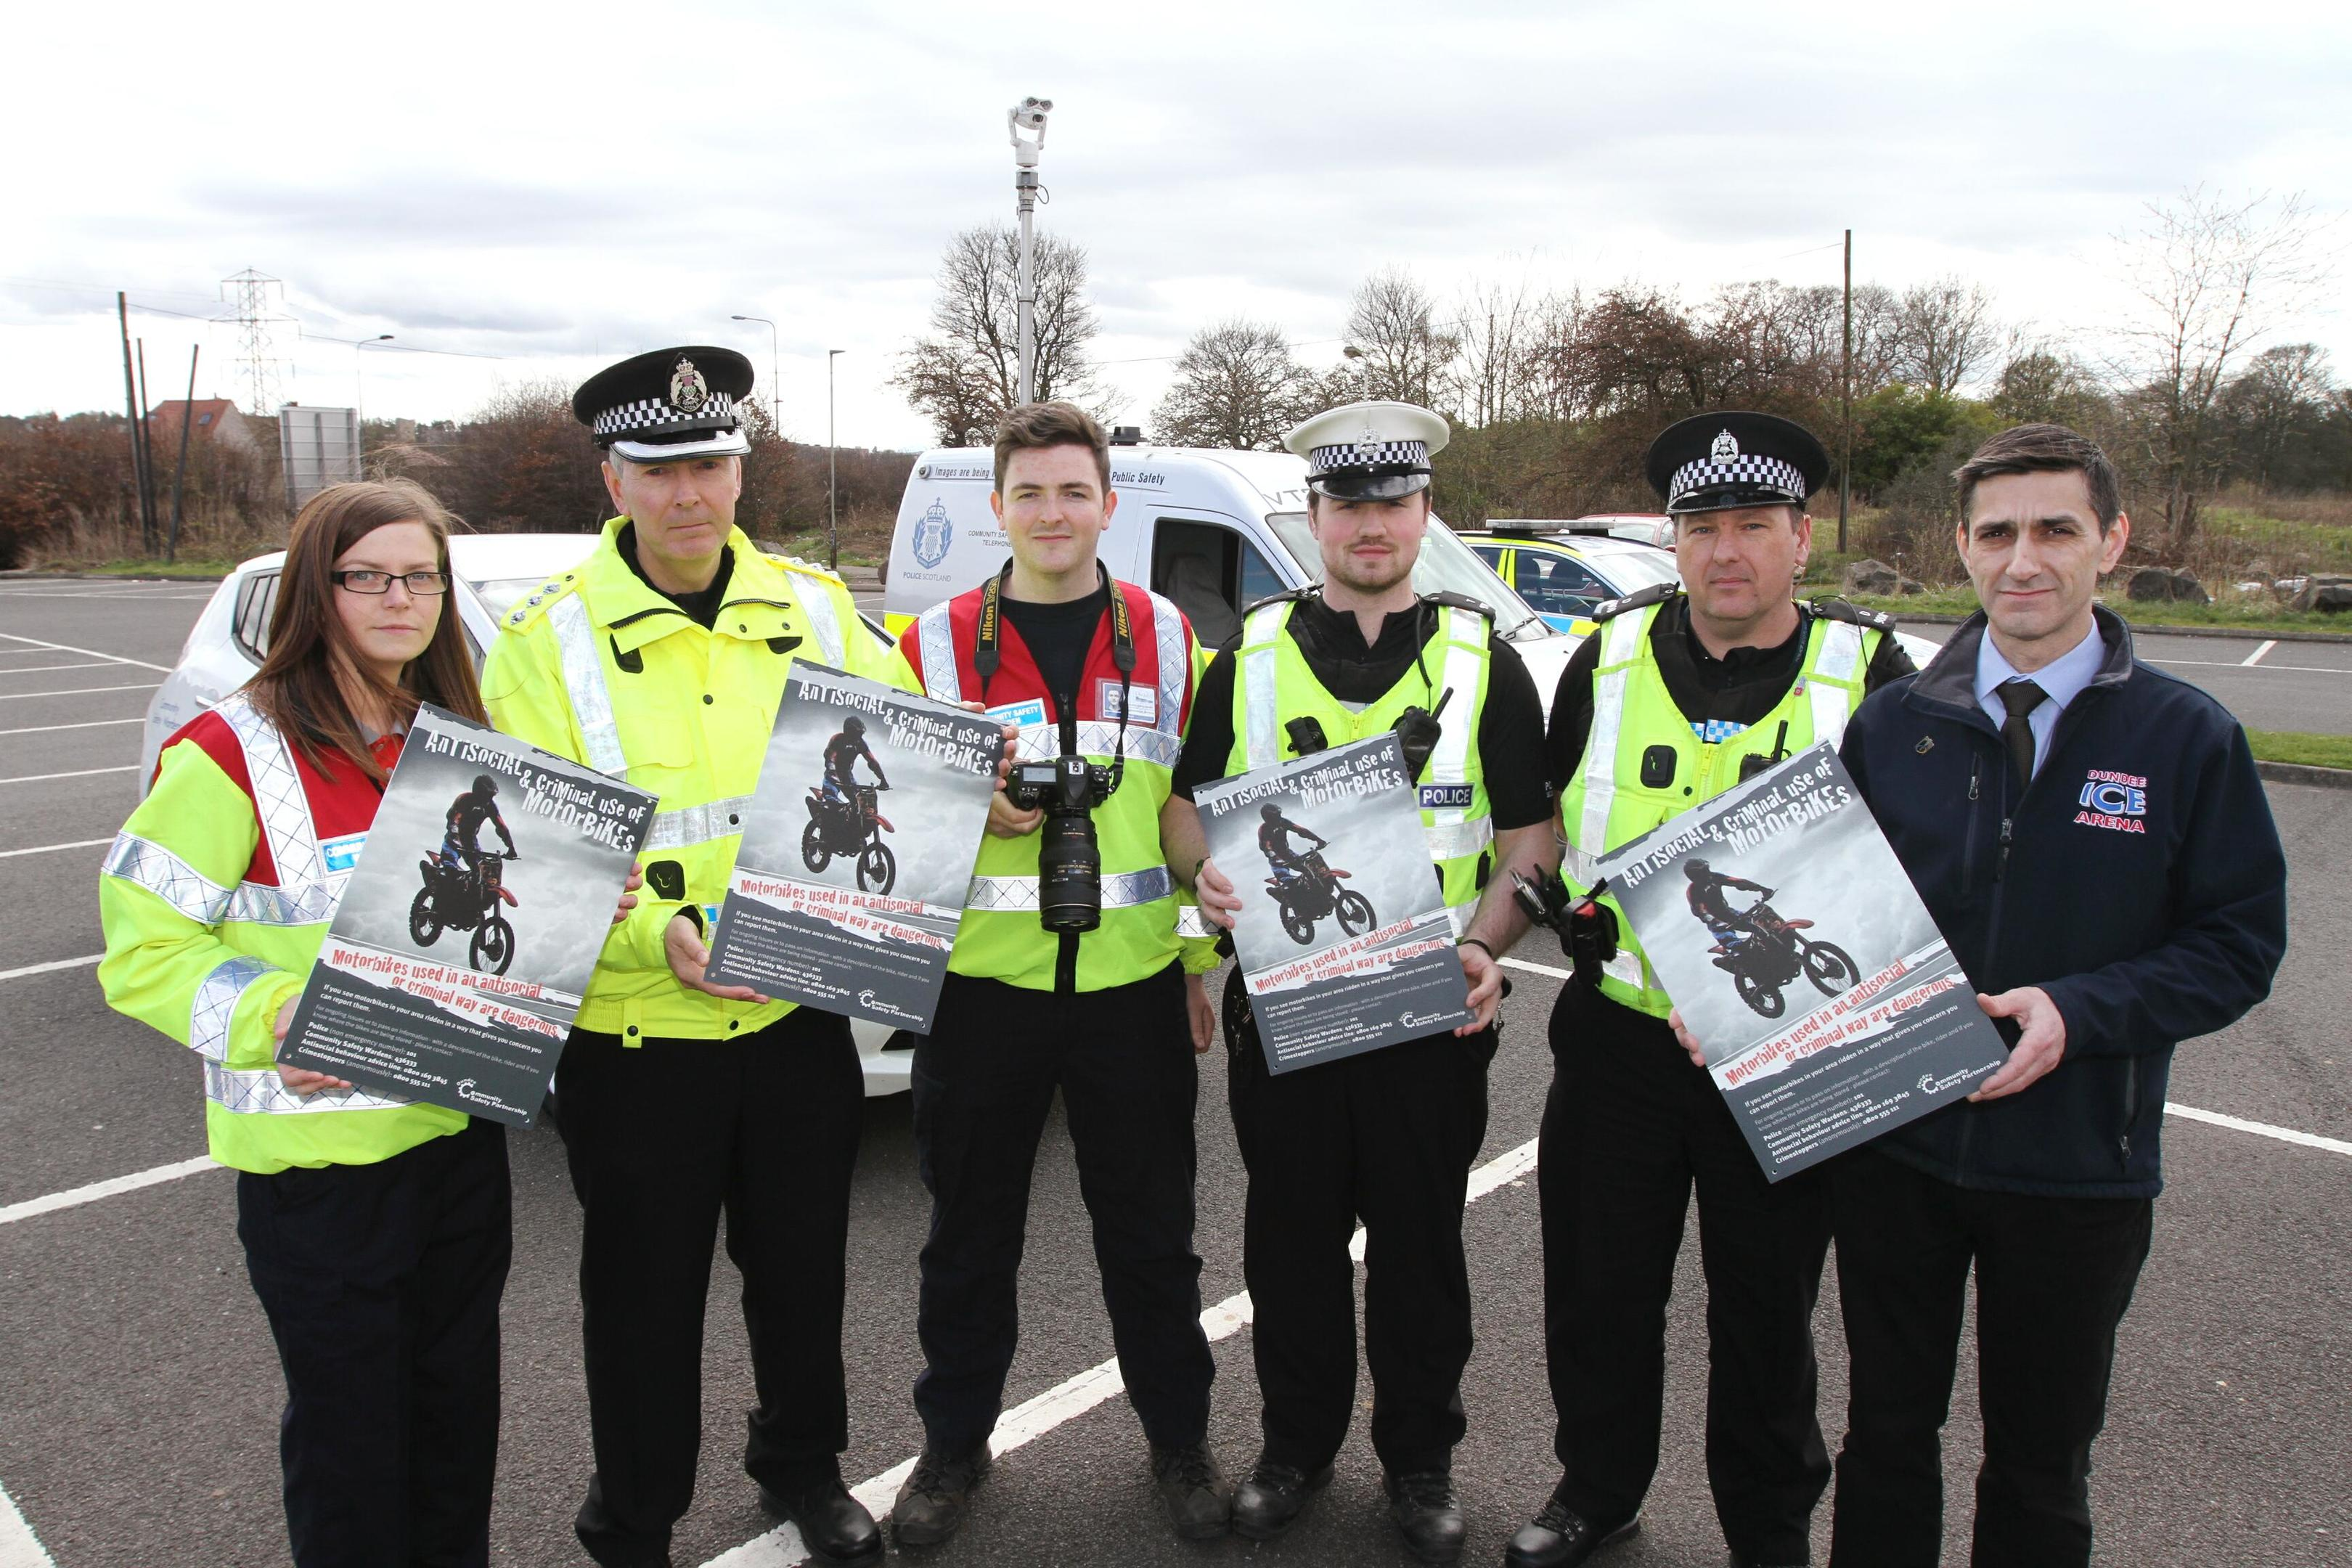 Police launched Operation Challenge to tackle illegal and antisocial use of petrol bikes